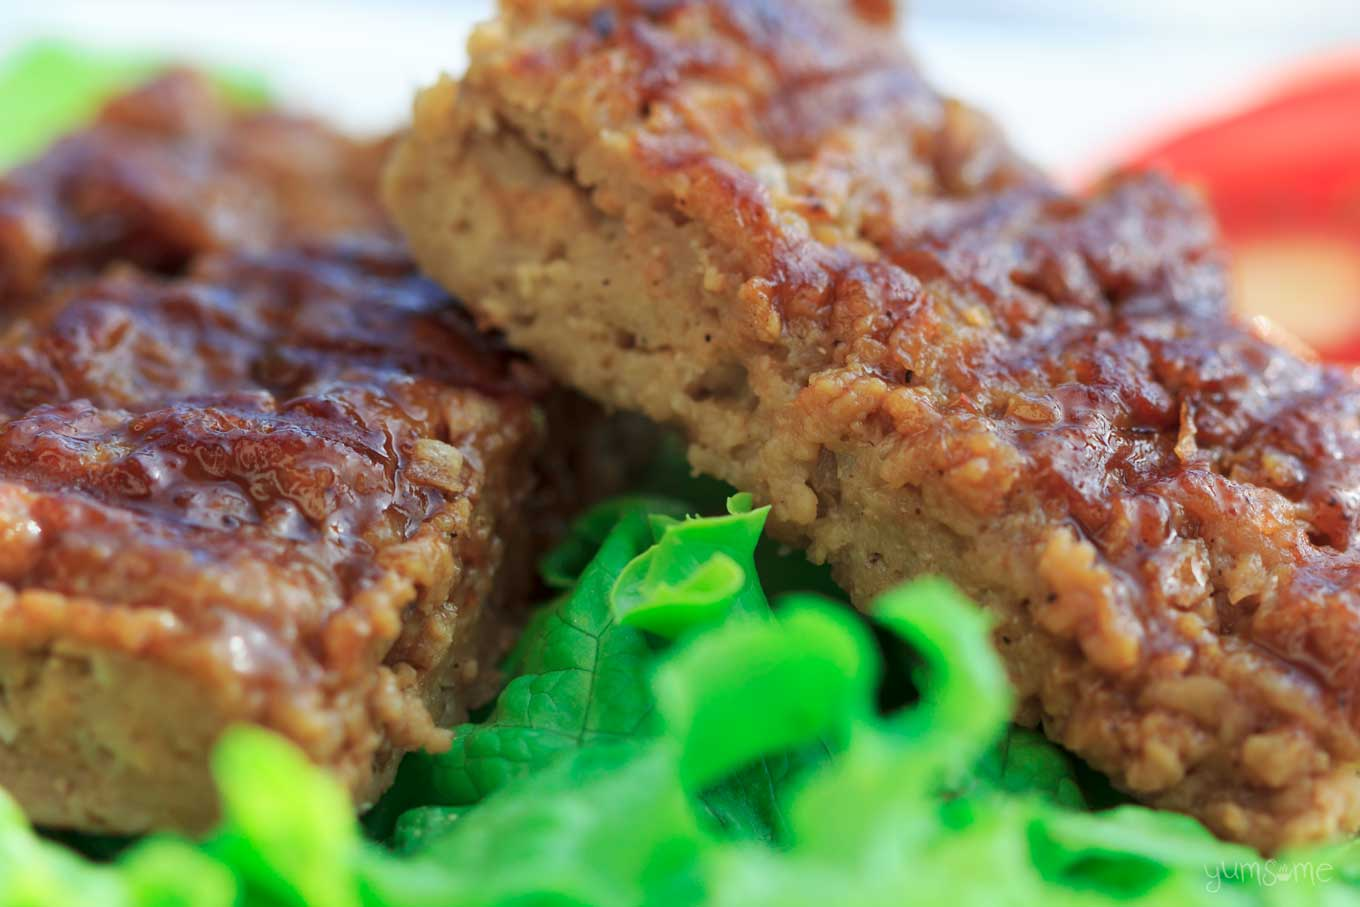 barbecued vegan ribs on lettuce | yumsome.com